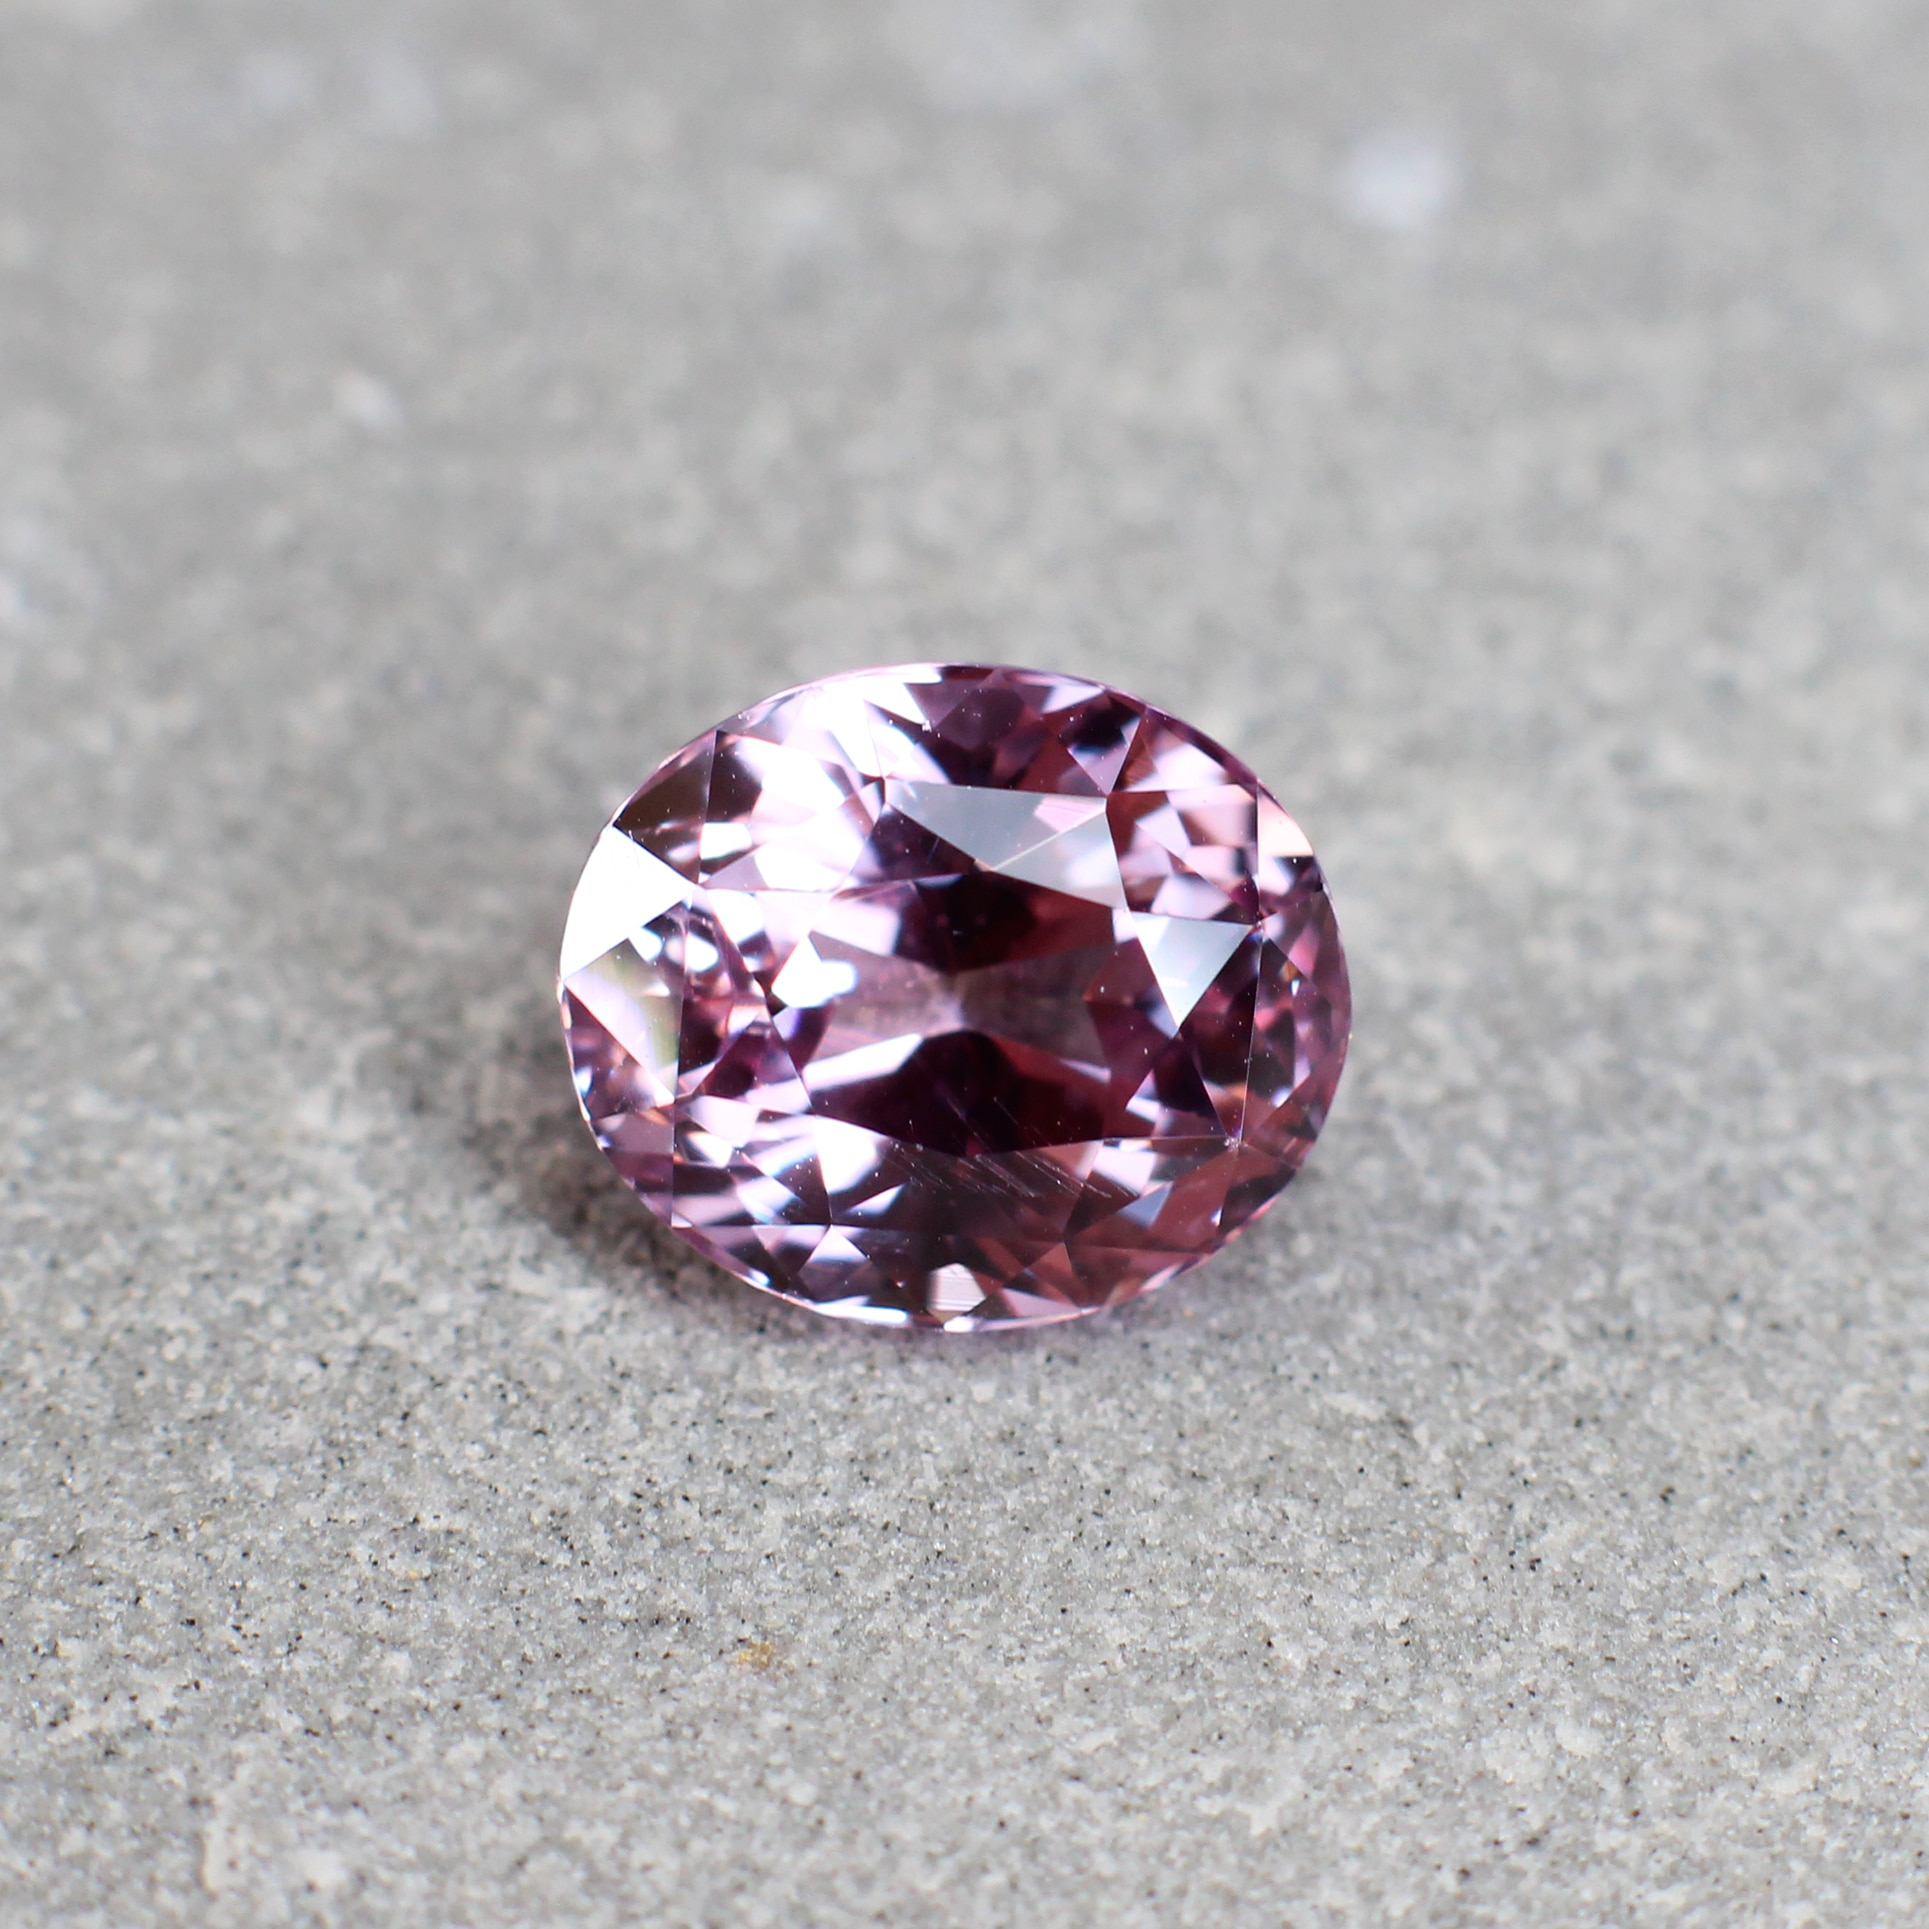 3.75 ct pink oval sapphire